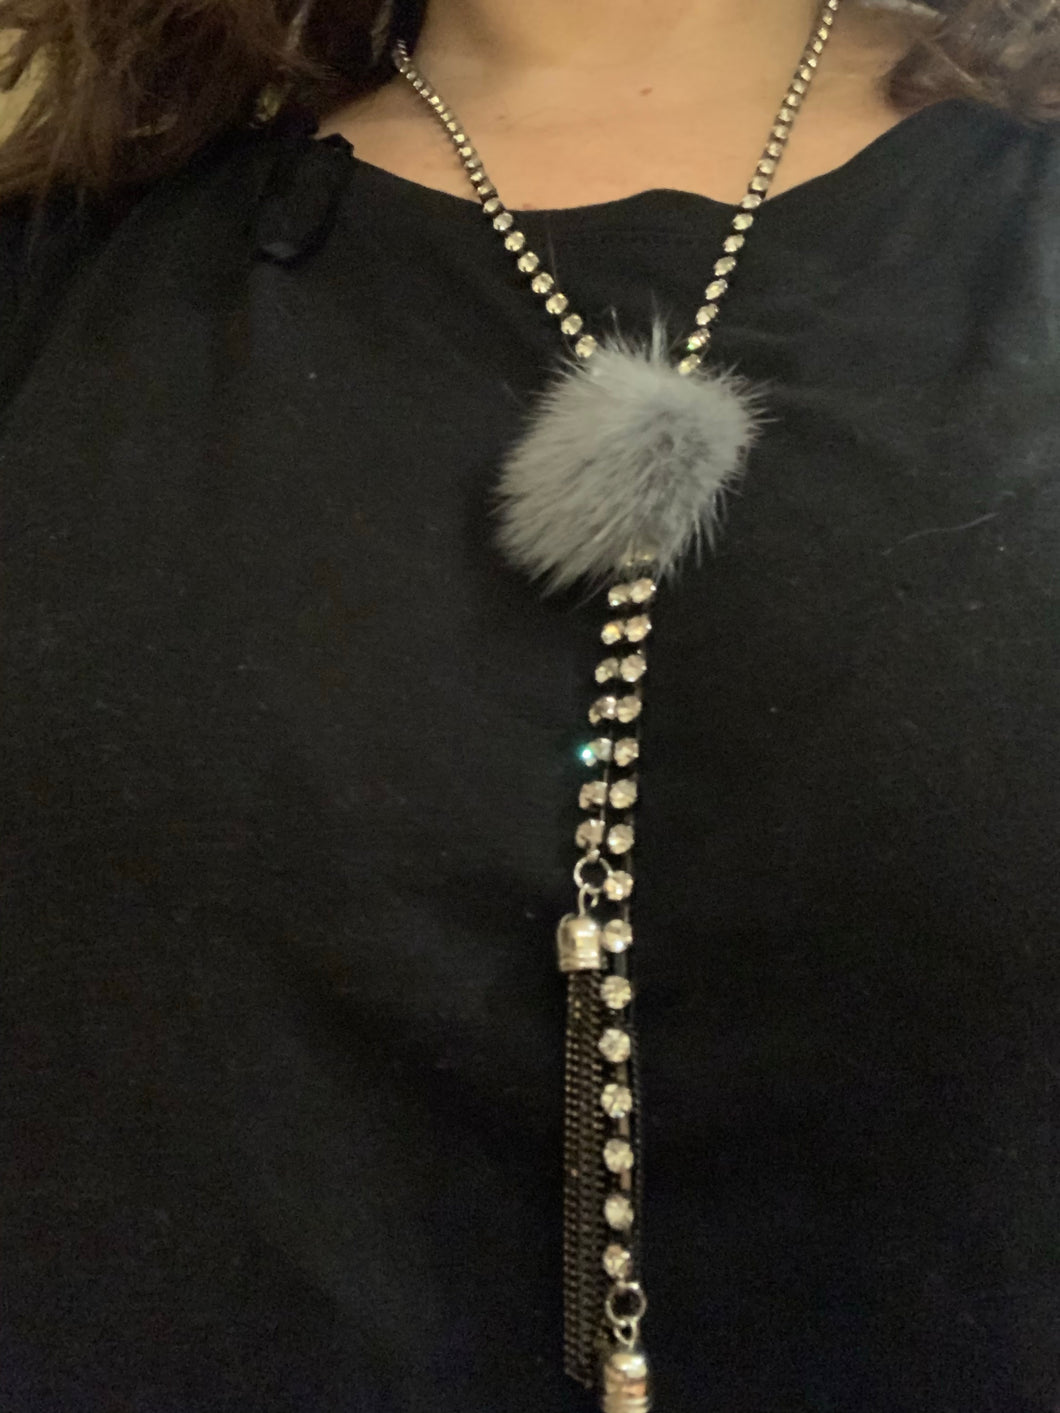 Chic fur necklace with Rhinestones